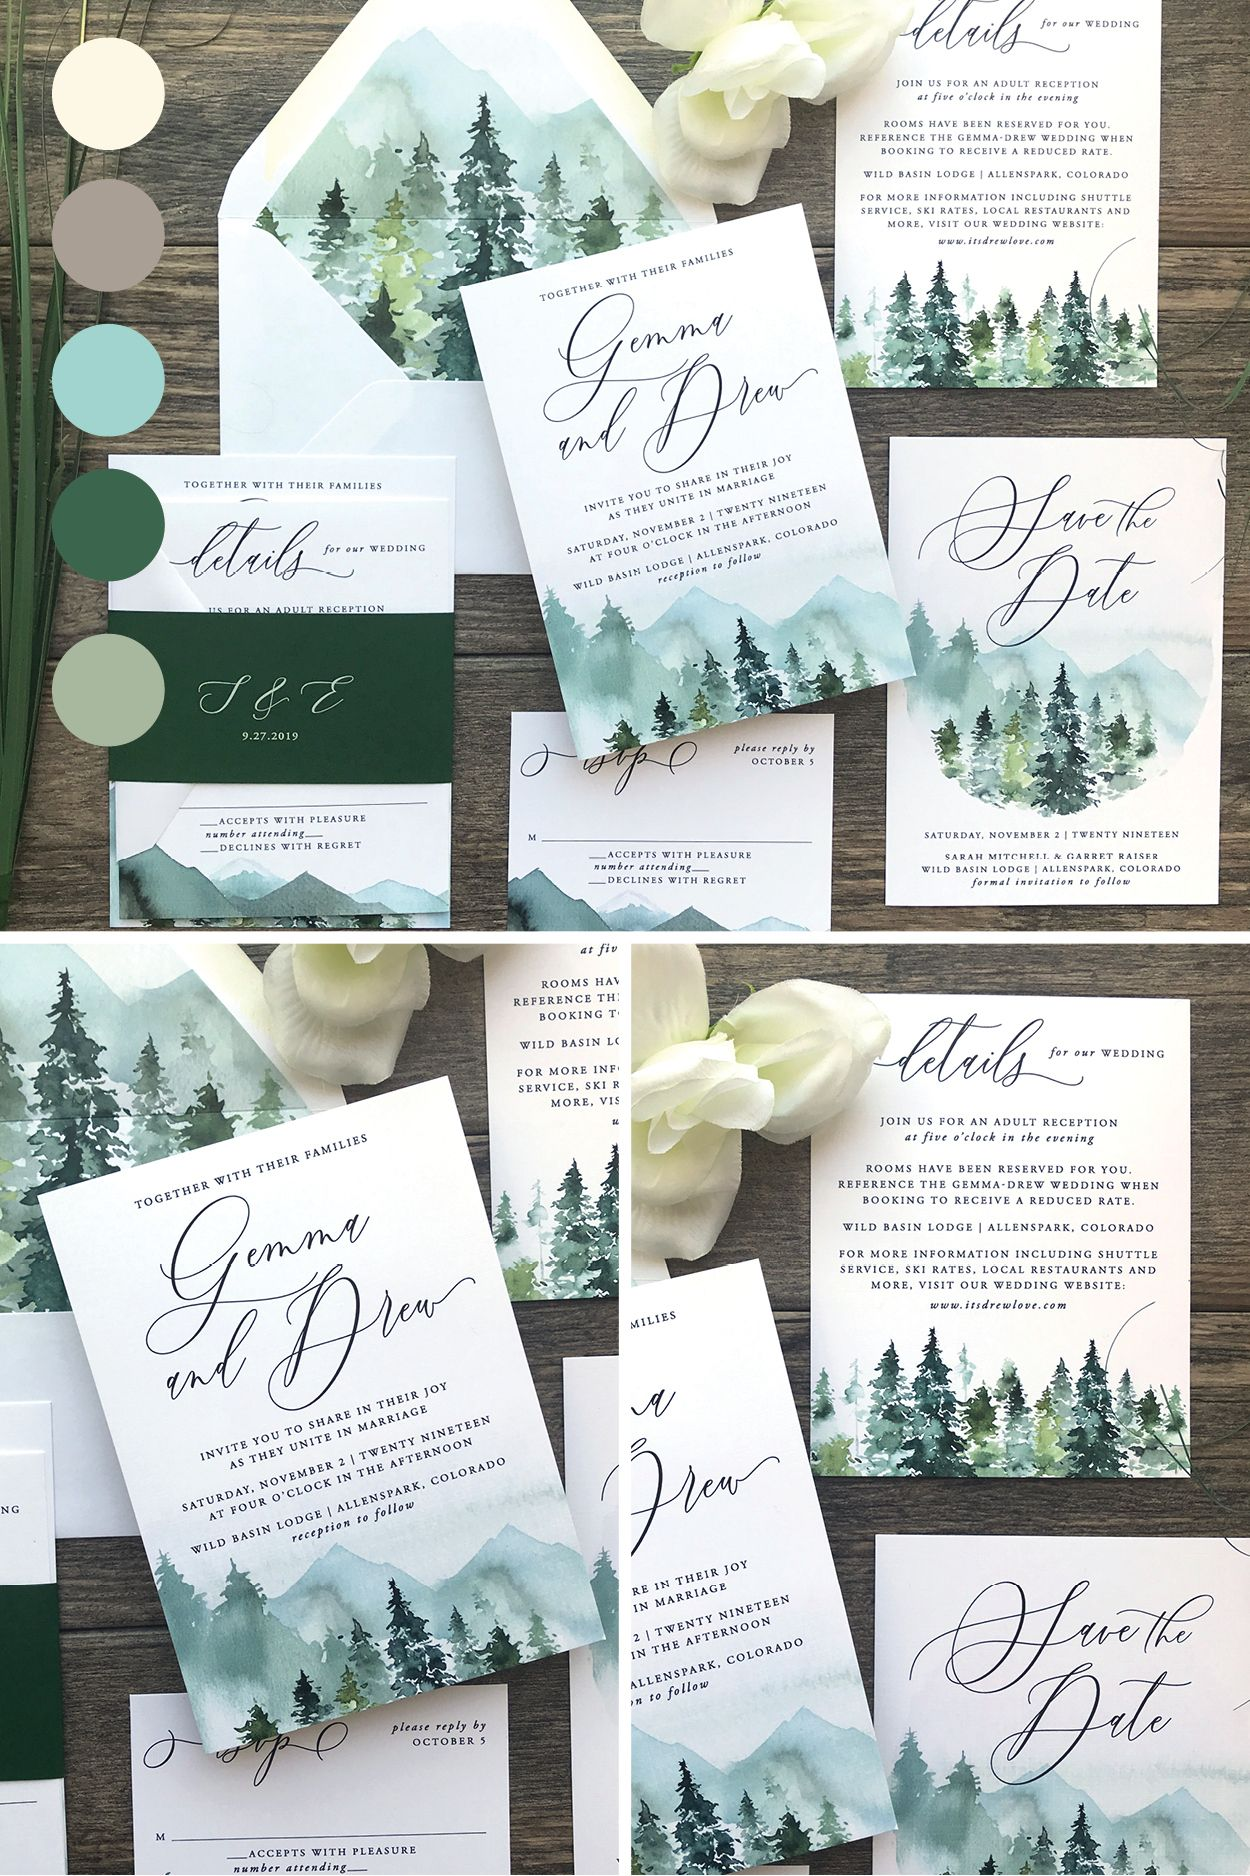 Rustic Mountain Forest Watercolor Wedding Invitations 217 Dreaminginpaper Watercolor Wedding Invitations Wedding Invitation Sets Country Wedding Invitations